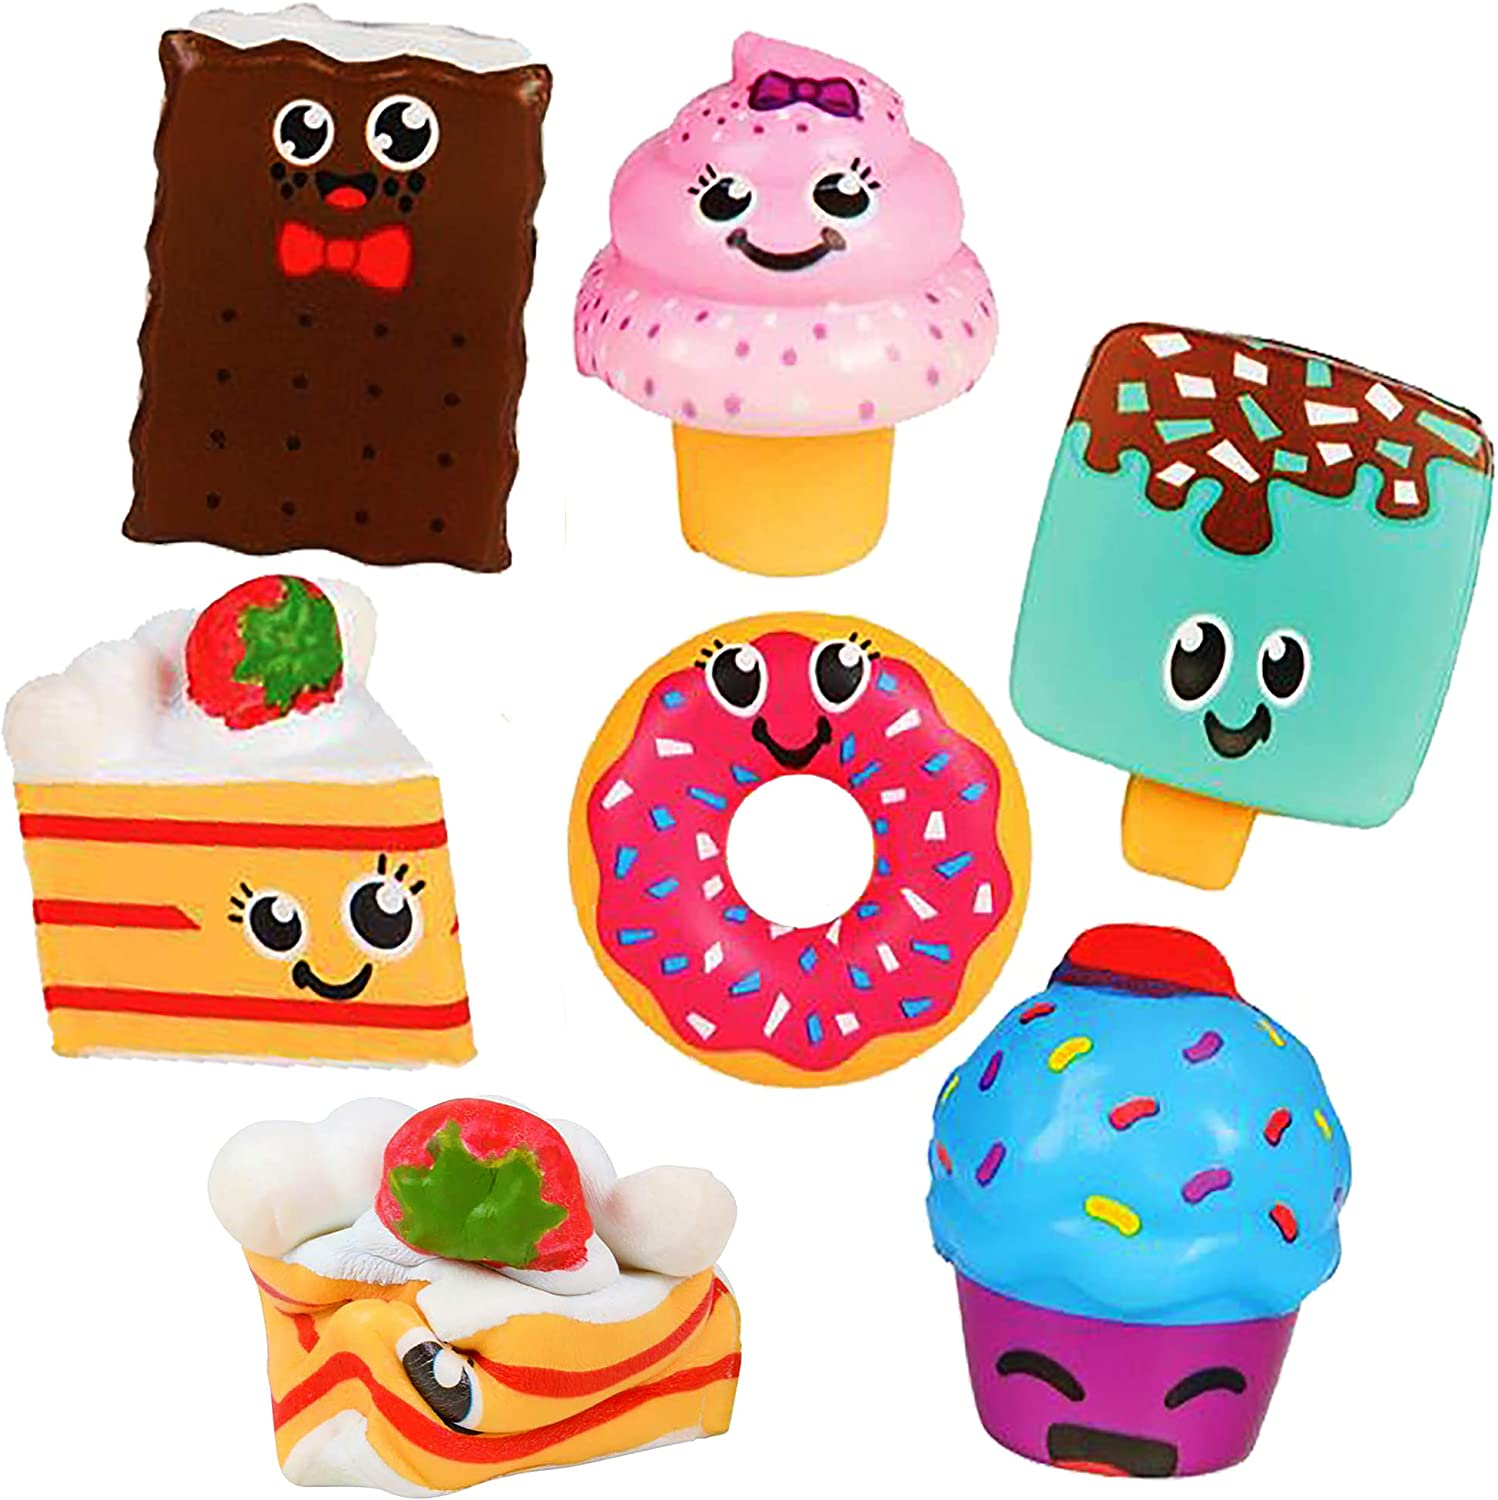 6 Squishy Toys for Kids Scented Slow Rising Squishies - Desert Food Cute Pack Ice Cream, Smores, Donut & More, 3 Inch - Stress Relief Fidget Squeeze Toy, Great Gift for Boys & Girls by 4E's Novelty